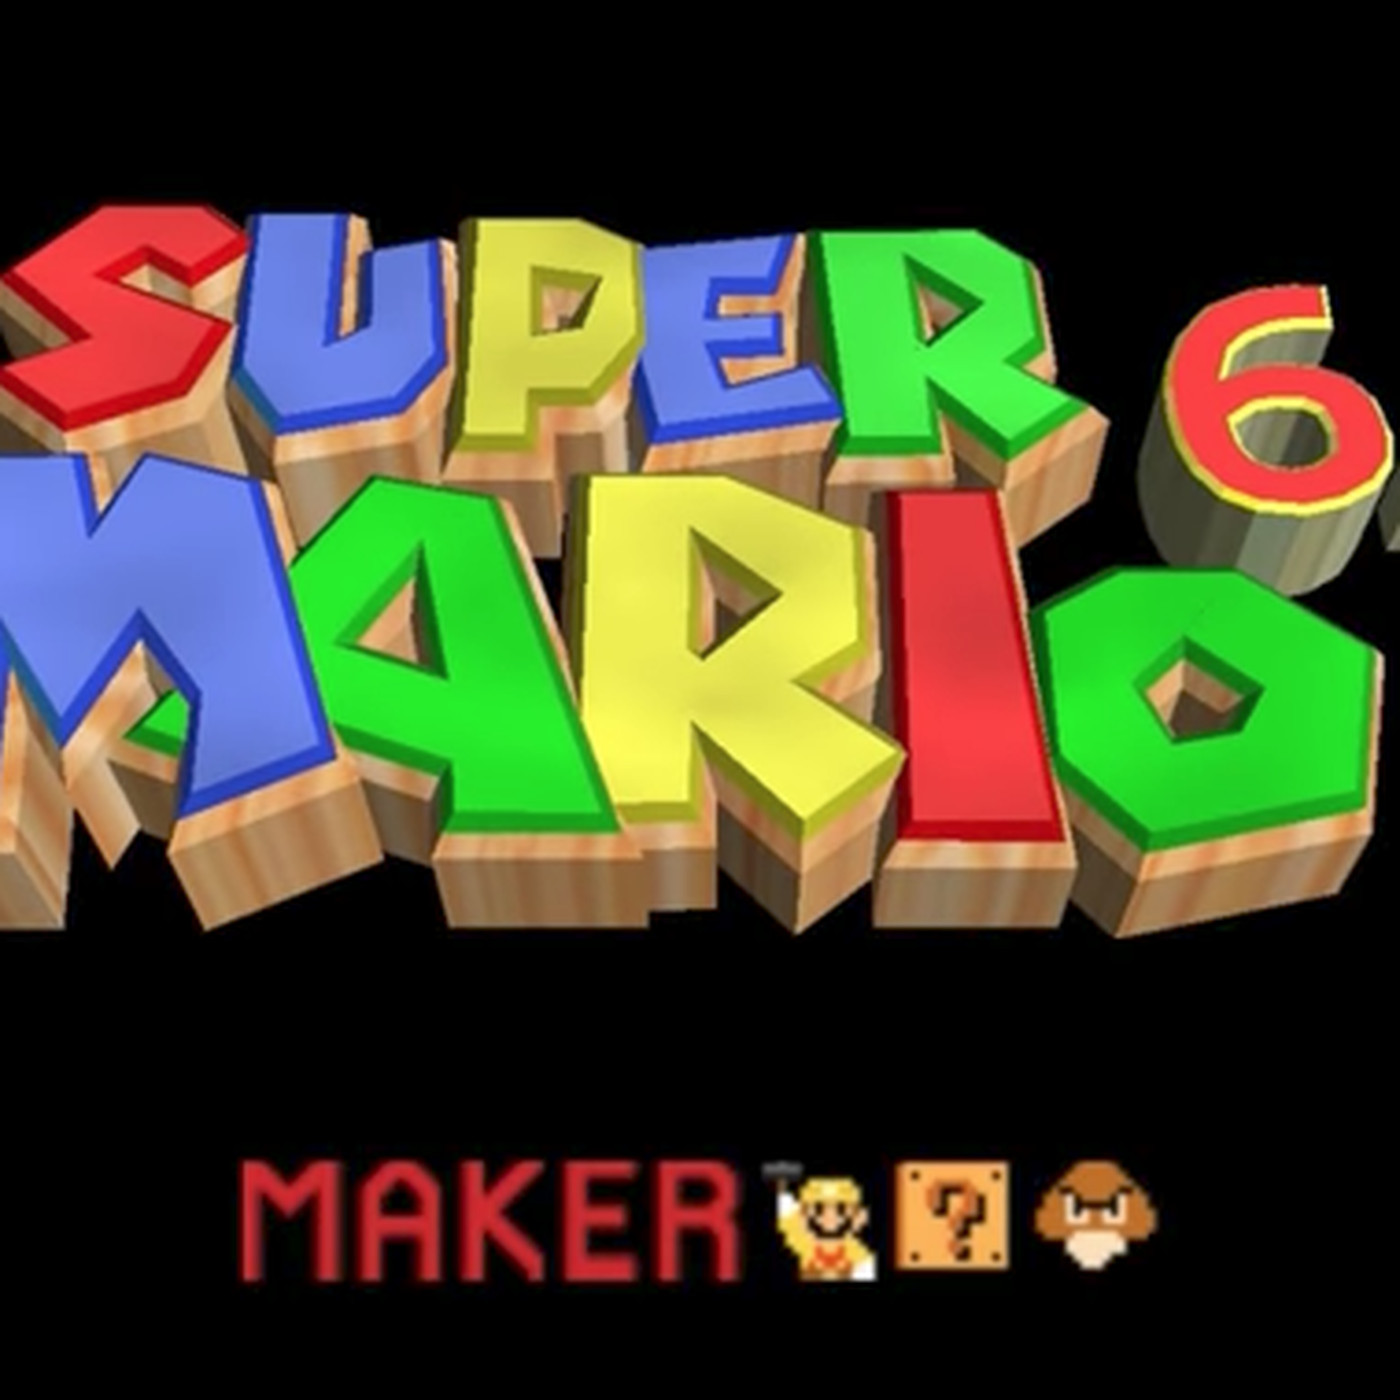 Super Mario 64 Maker' mod lets you create and edit levels in